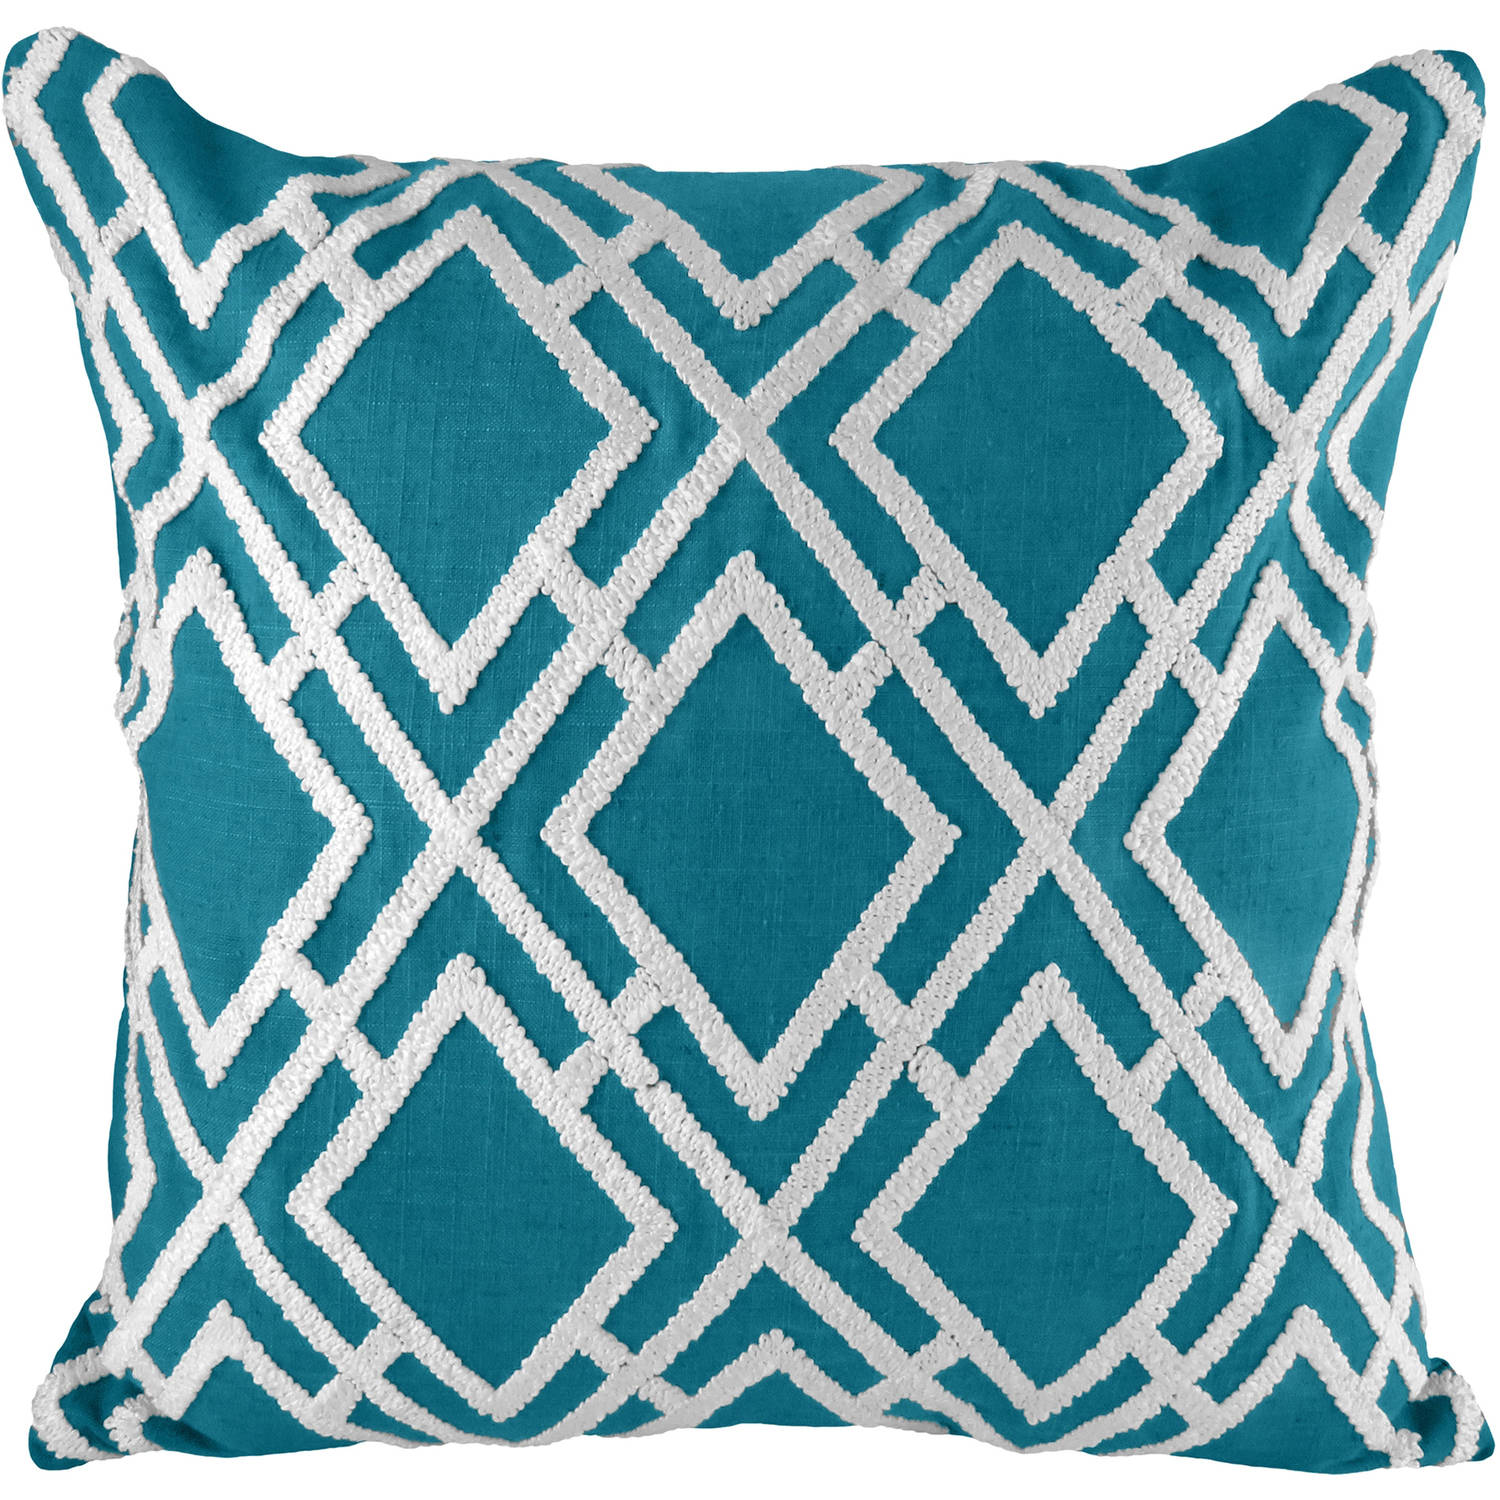 Better Homes and Gardens Diamond Trellis Embroidery Decorative Toss Pillow